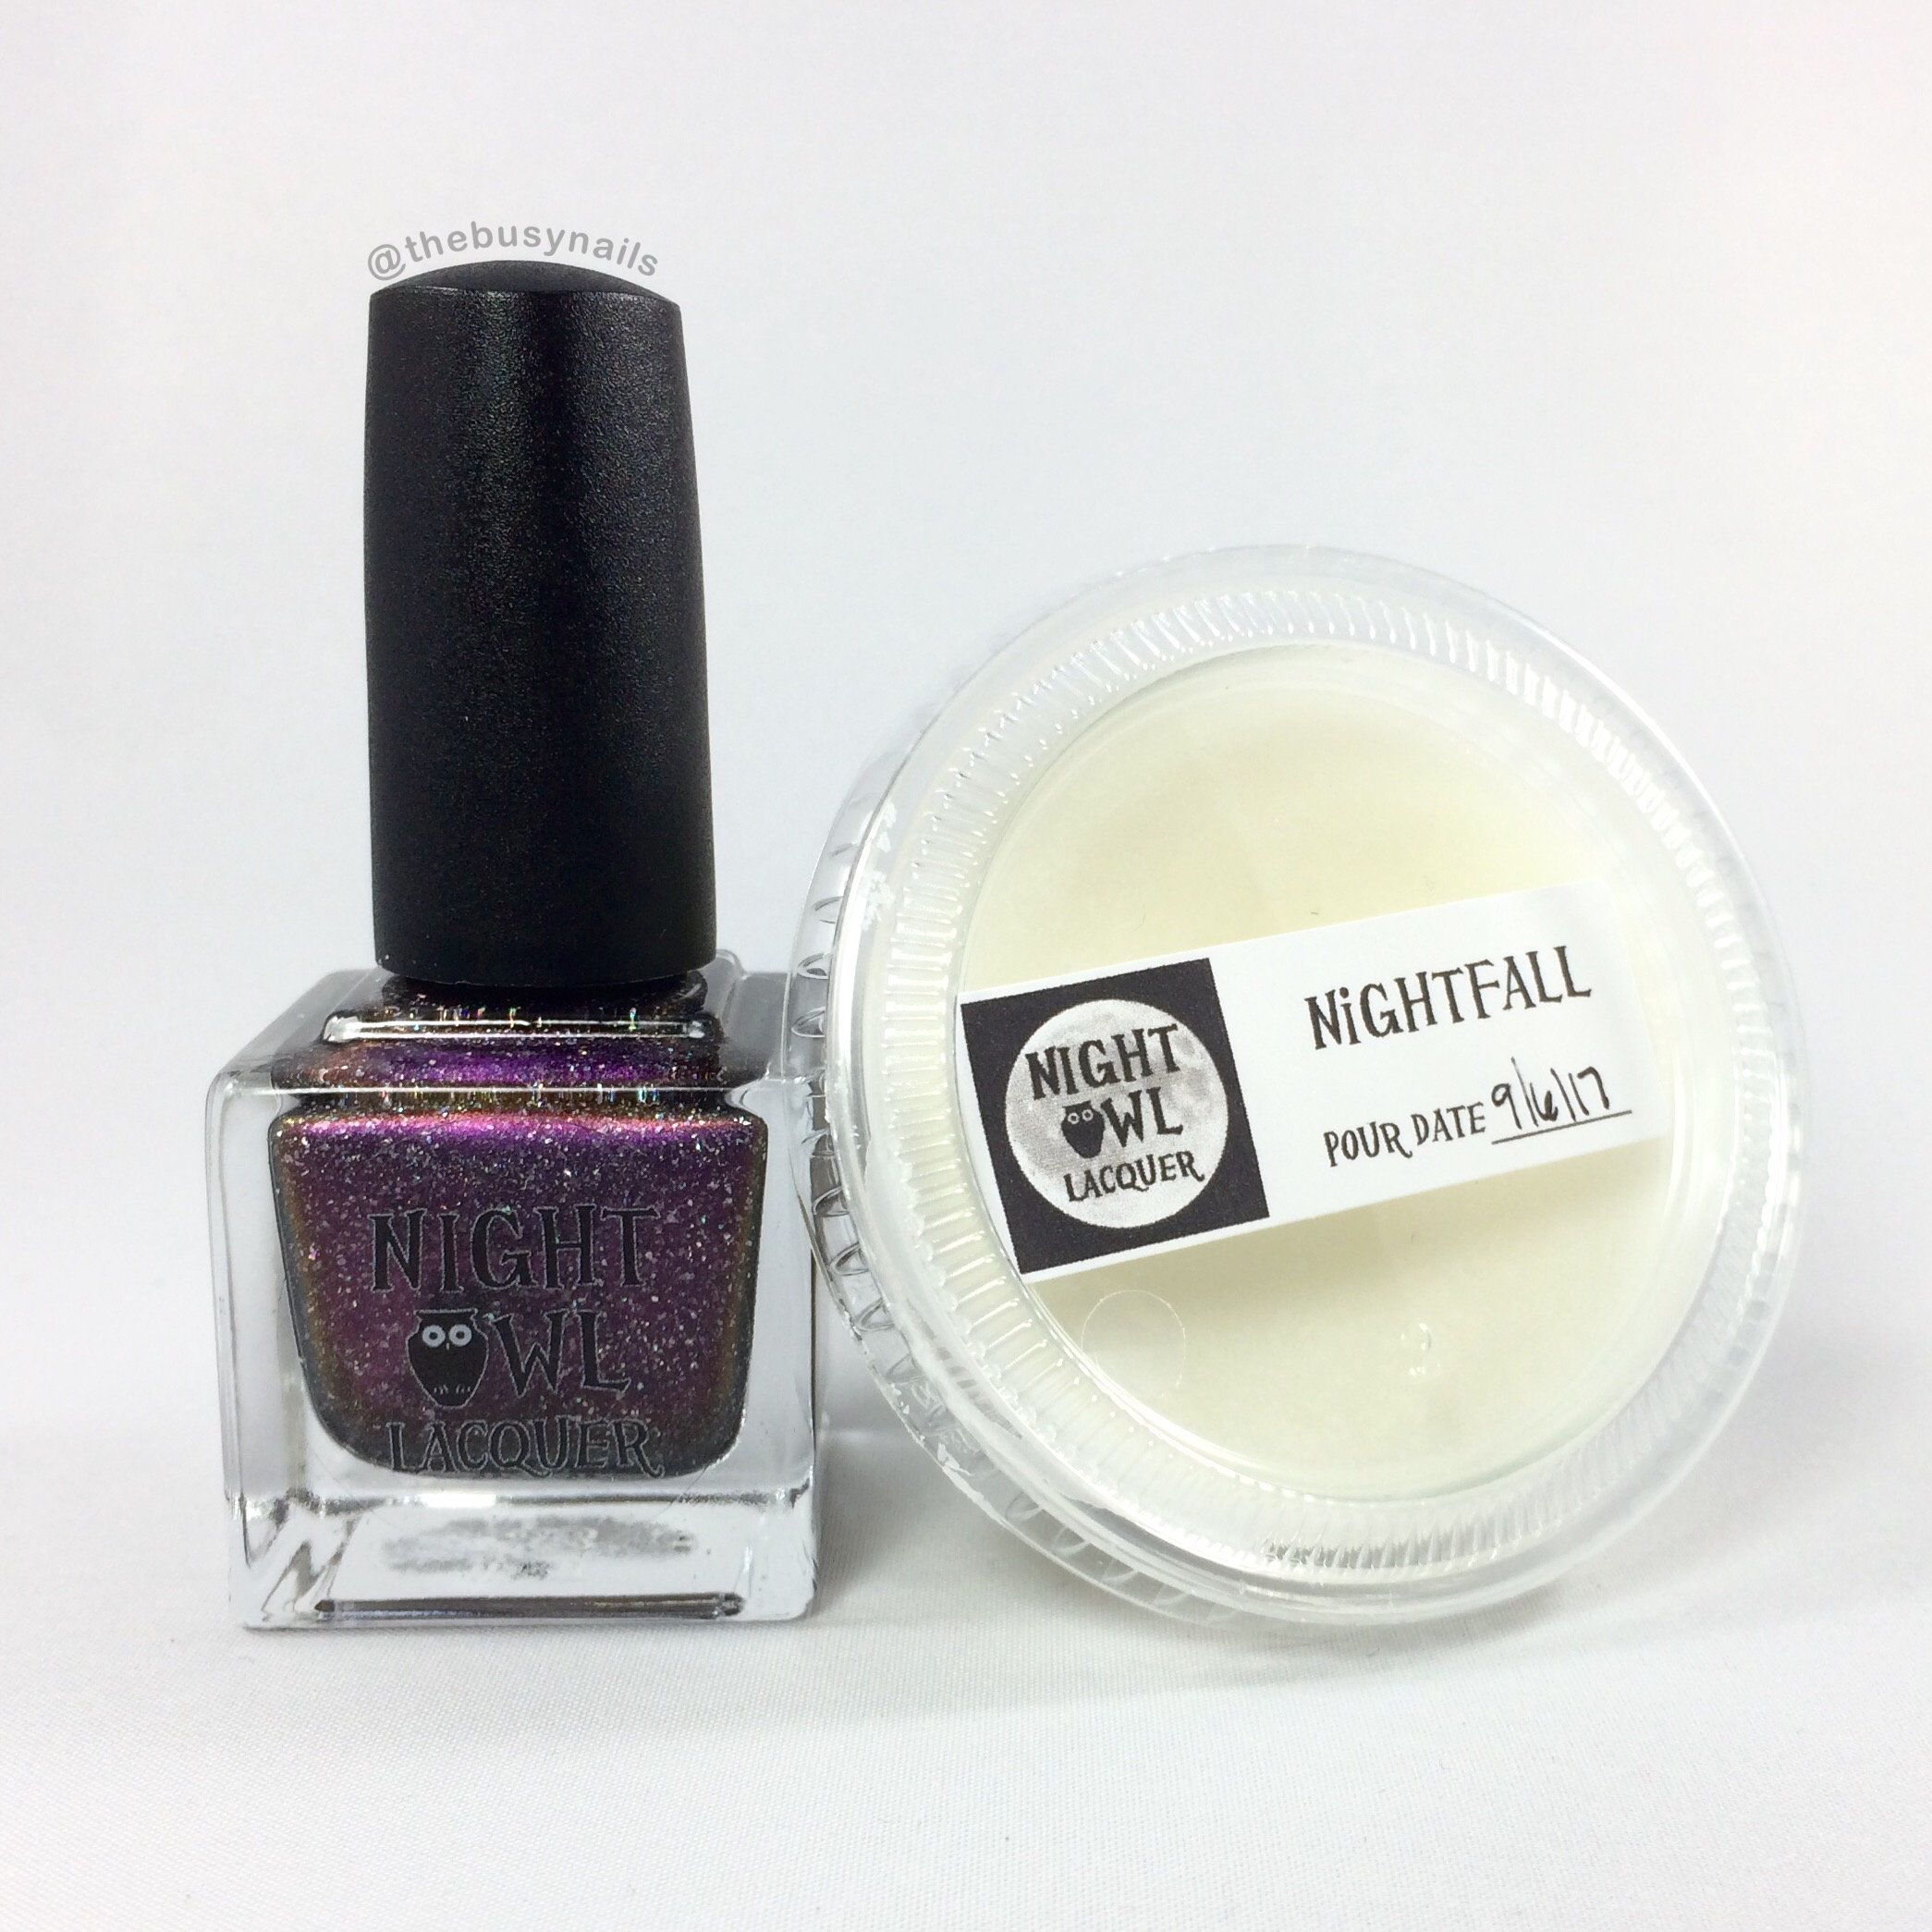 """Nightfall"" polish and wax melt. (Maker note: the wax melt packaging will likely change. It will be in the oval containers and will probably be colored.)"